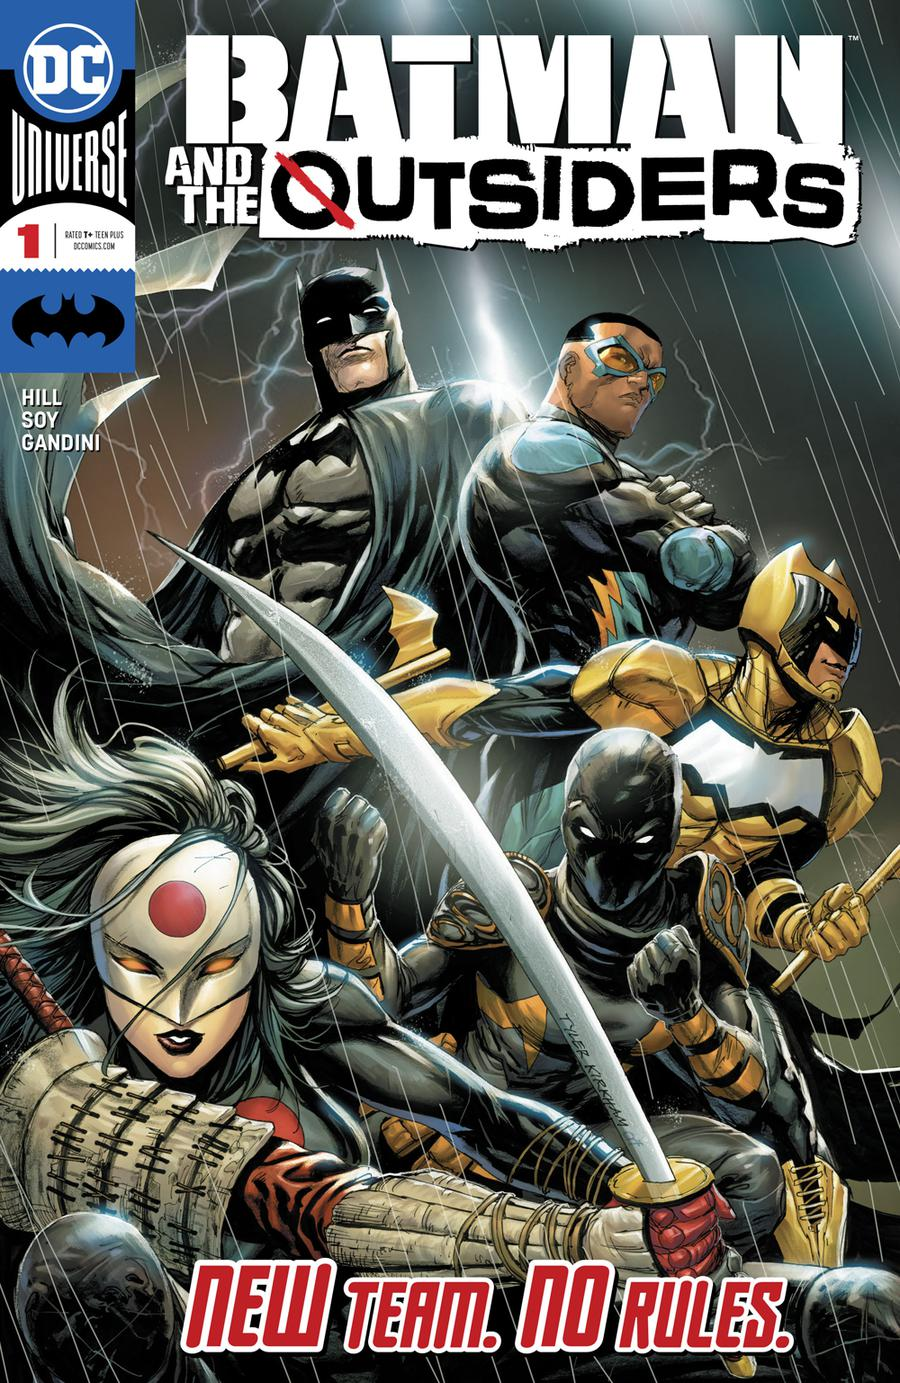 Batman And The Outsiders Vol 3 #1 Cover A Regular Tyler Kirkham Cover